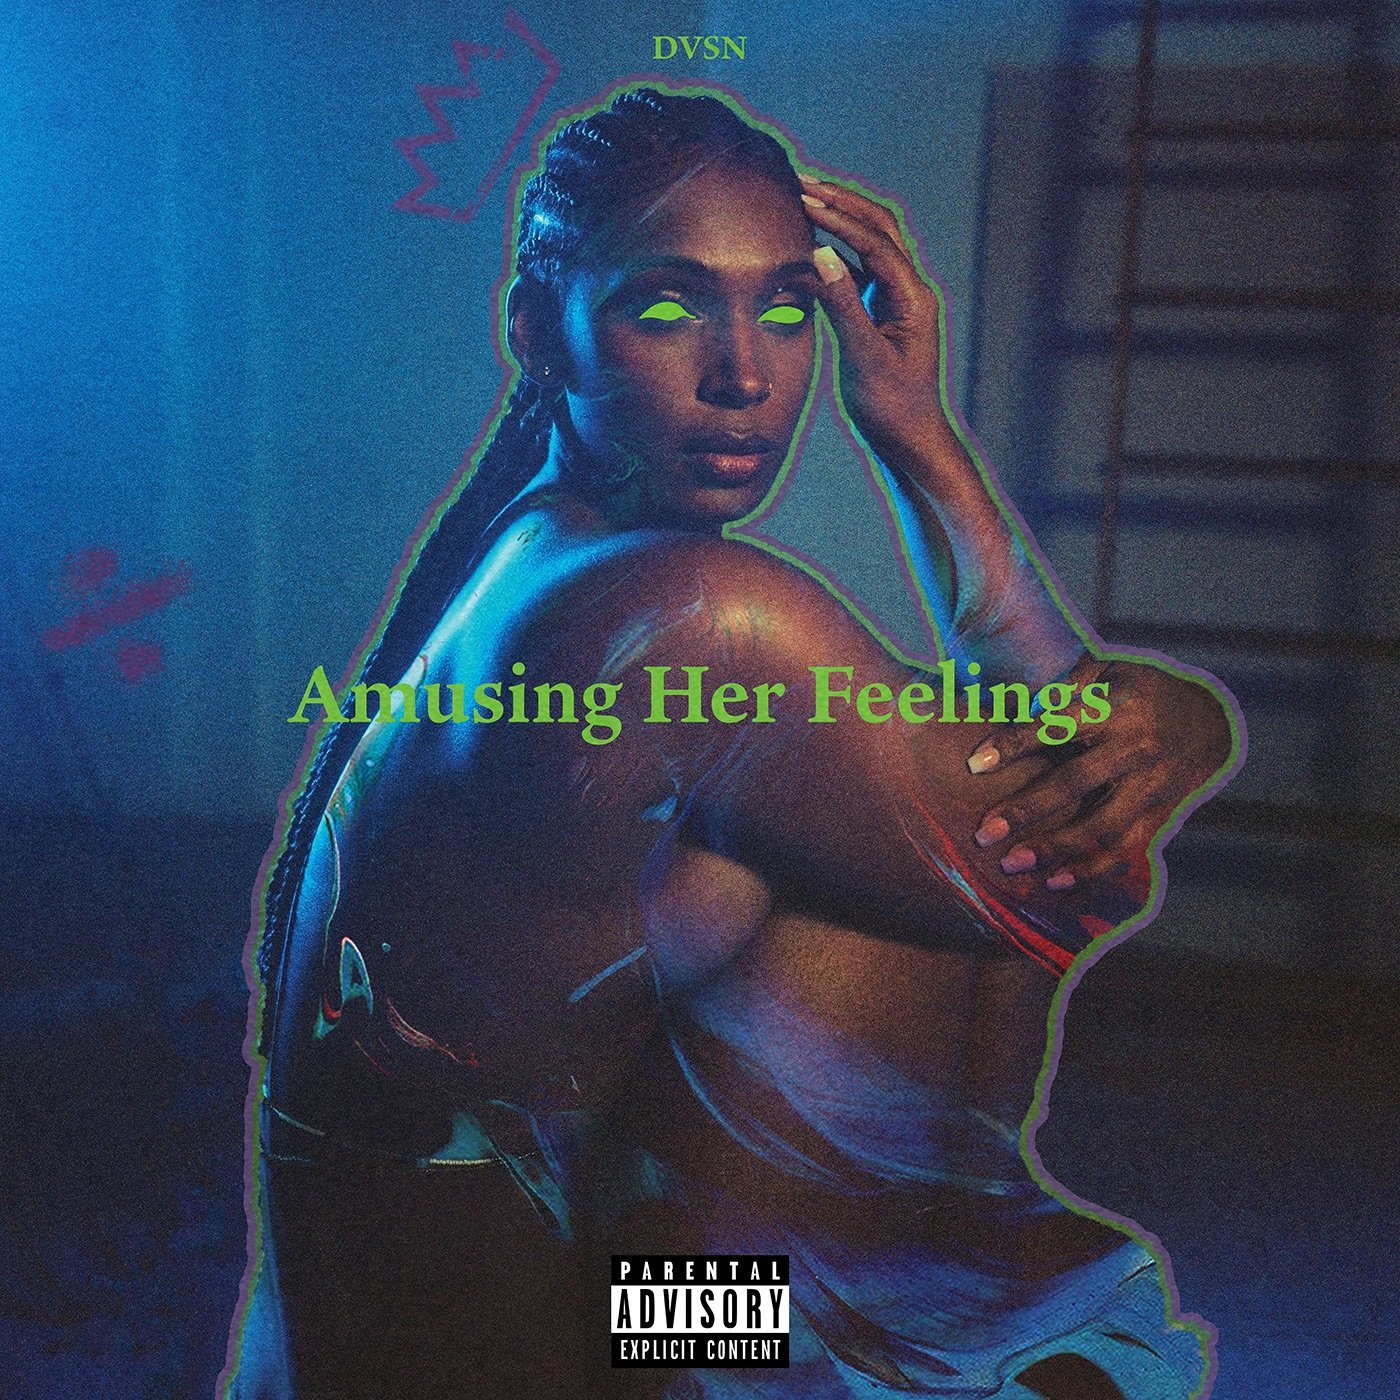 DVSN – Amusing Her Feelings (EP Stream)